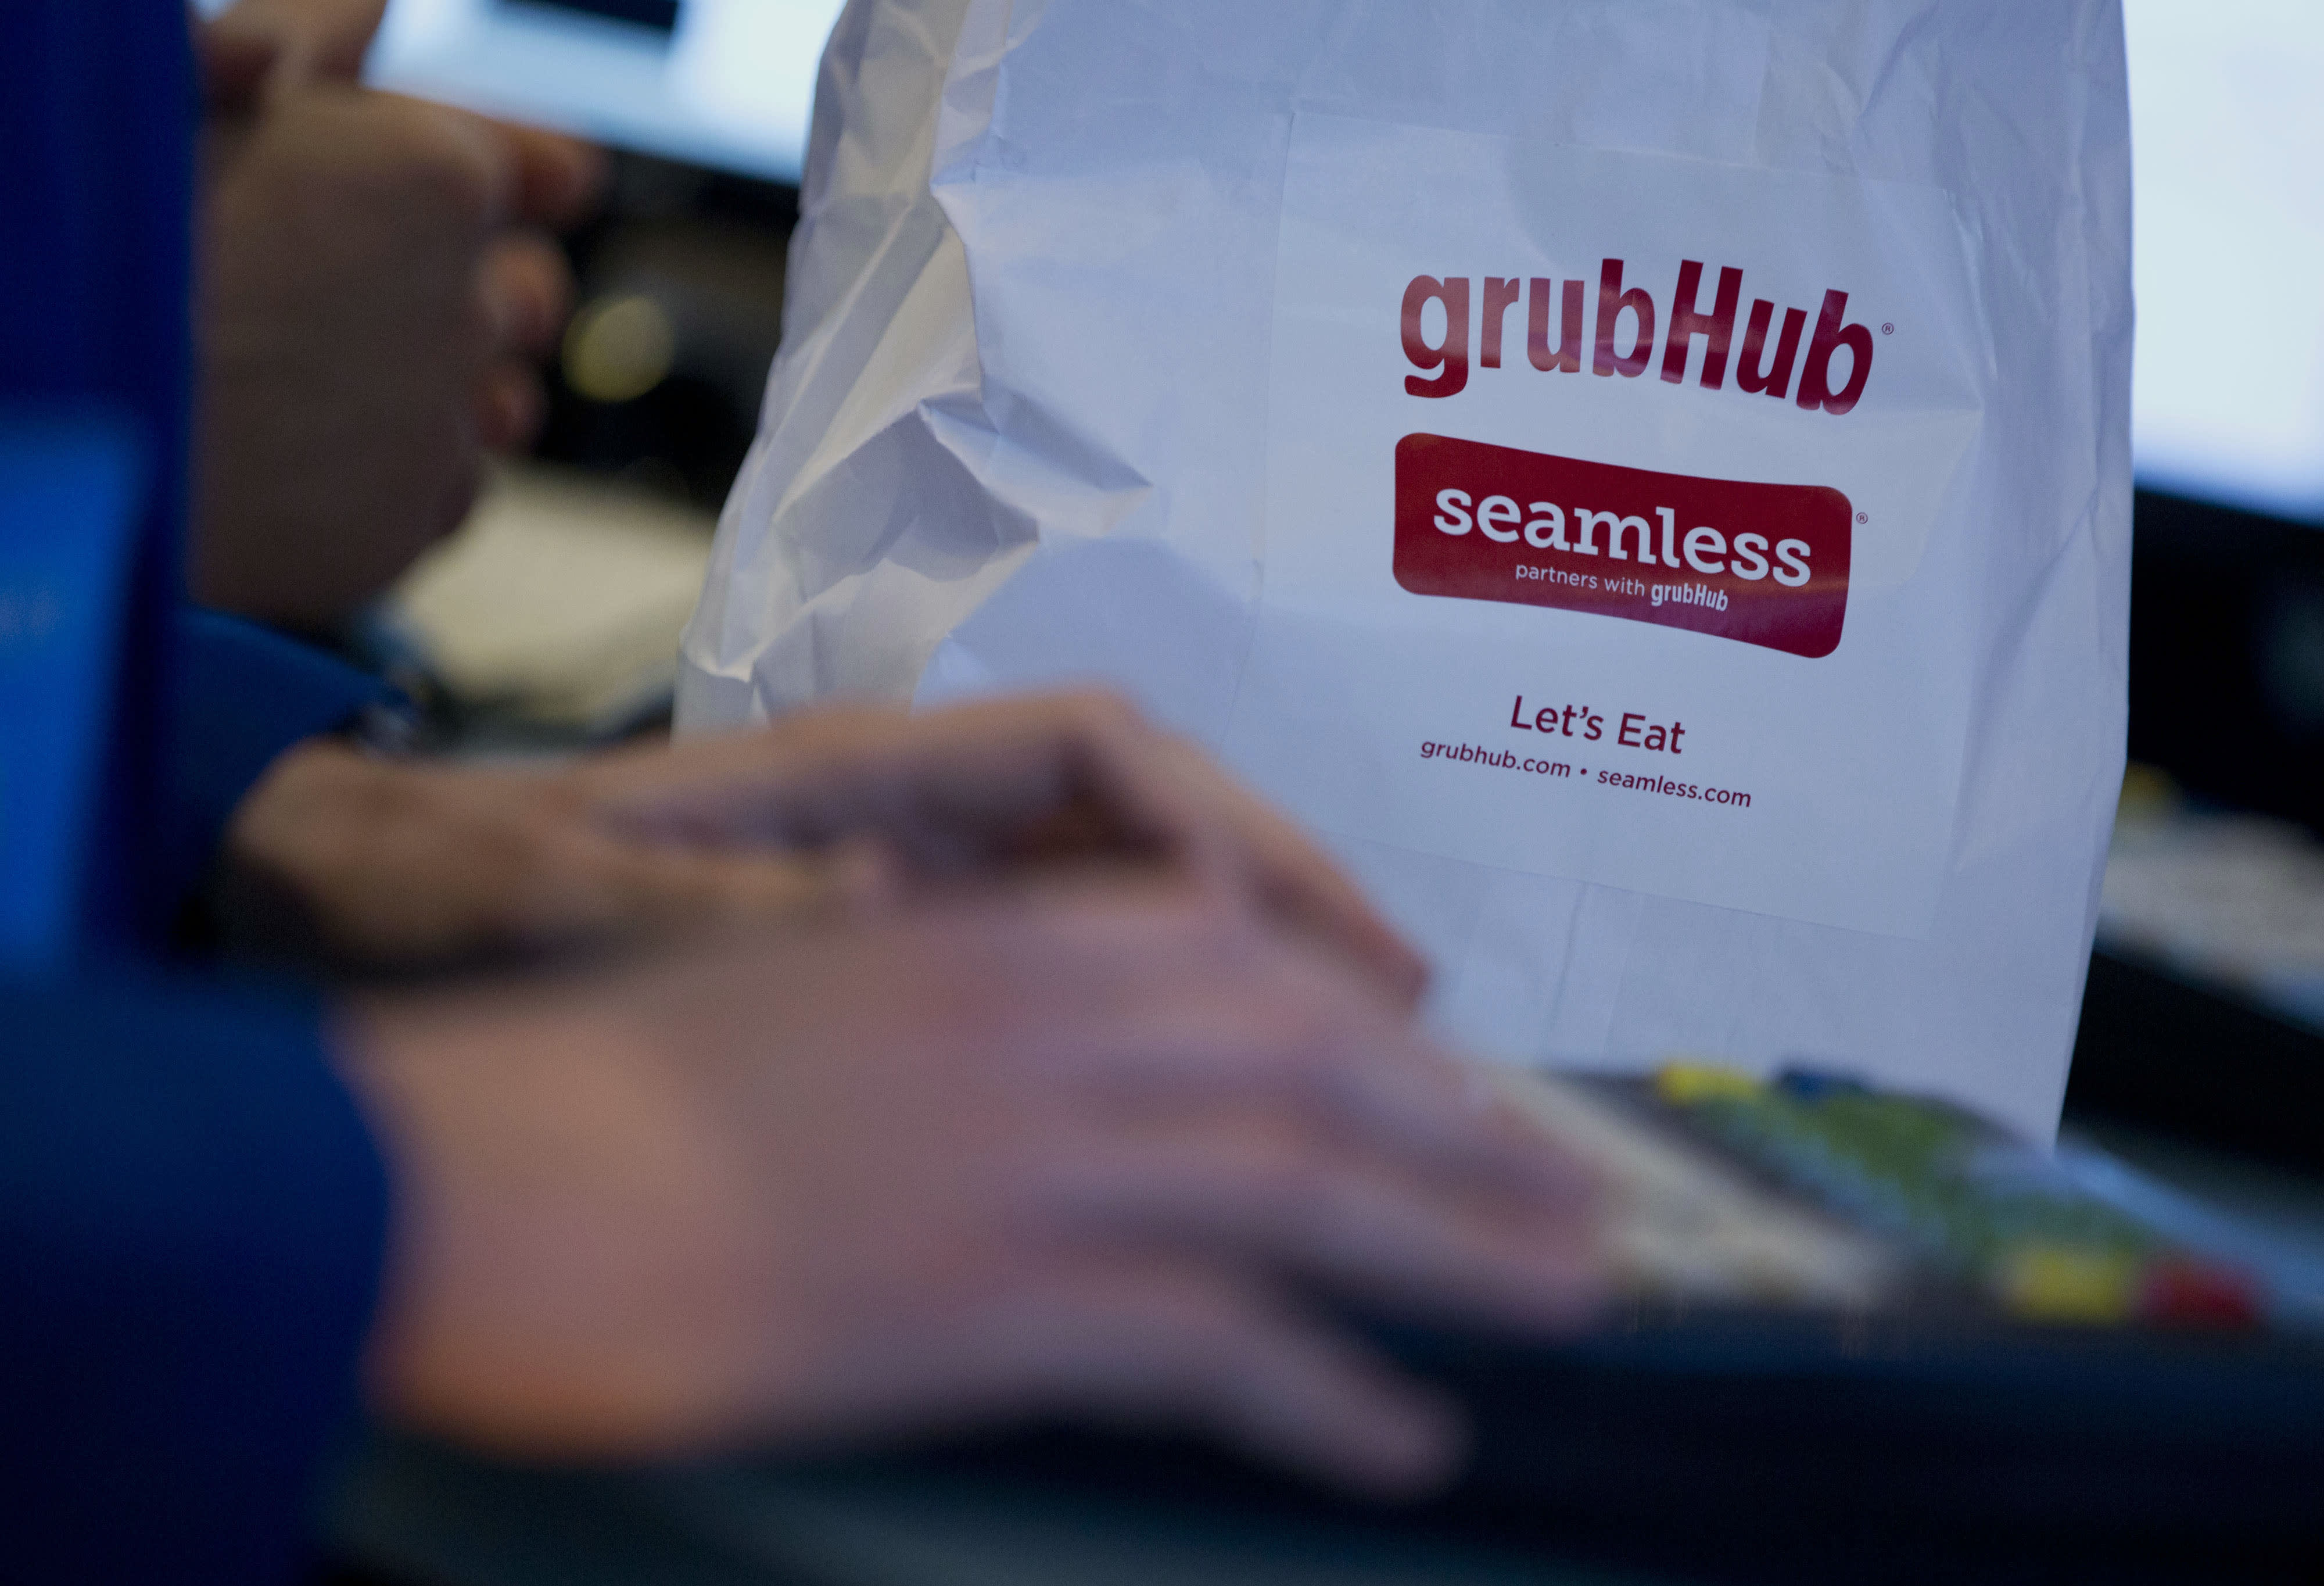 Options traders are betting that GrubHub is headed for the gutter